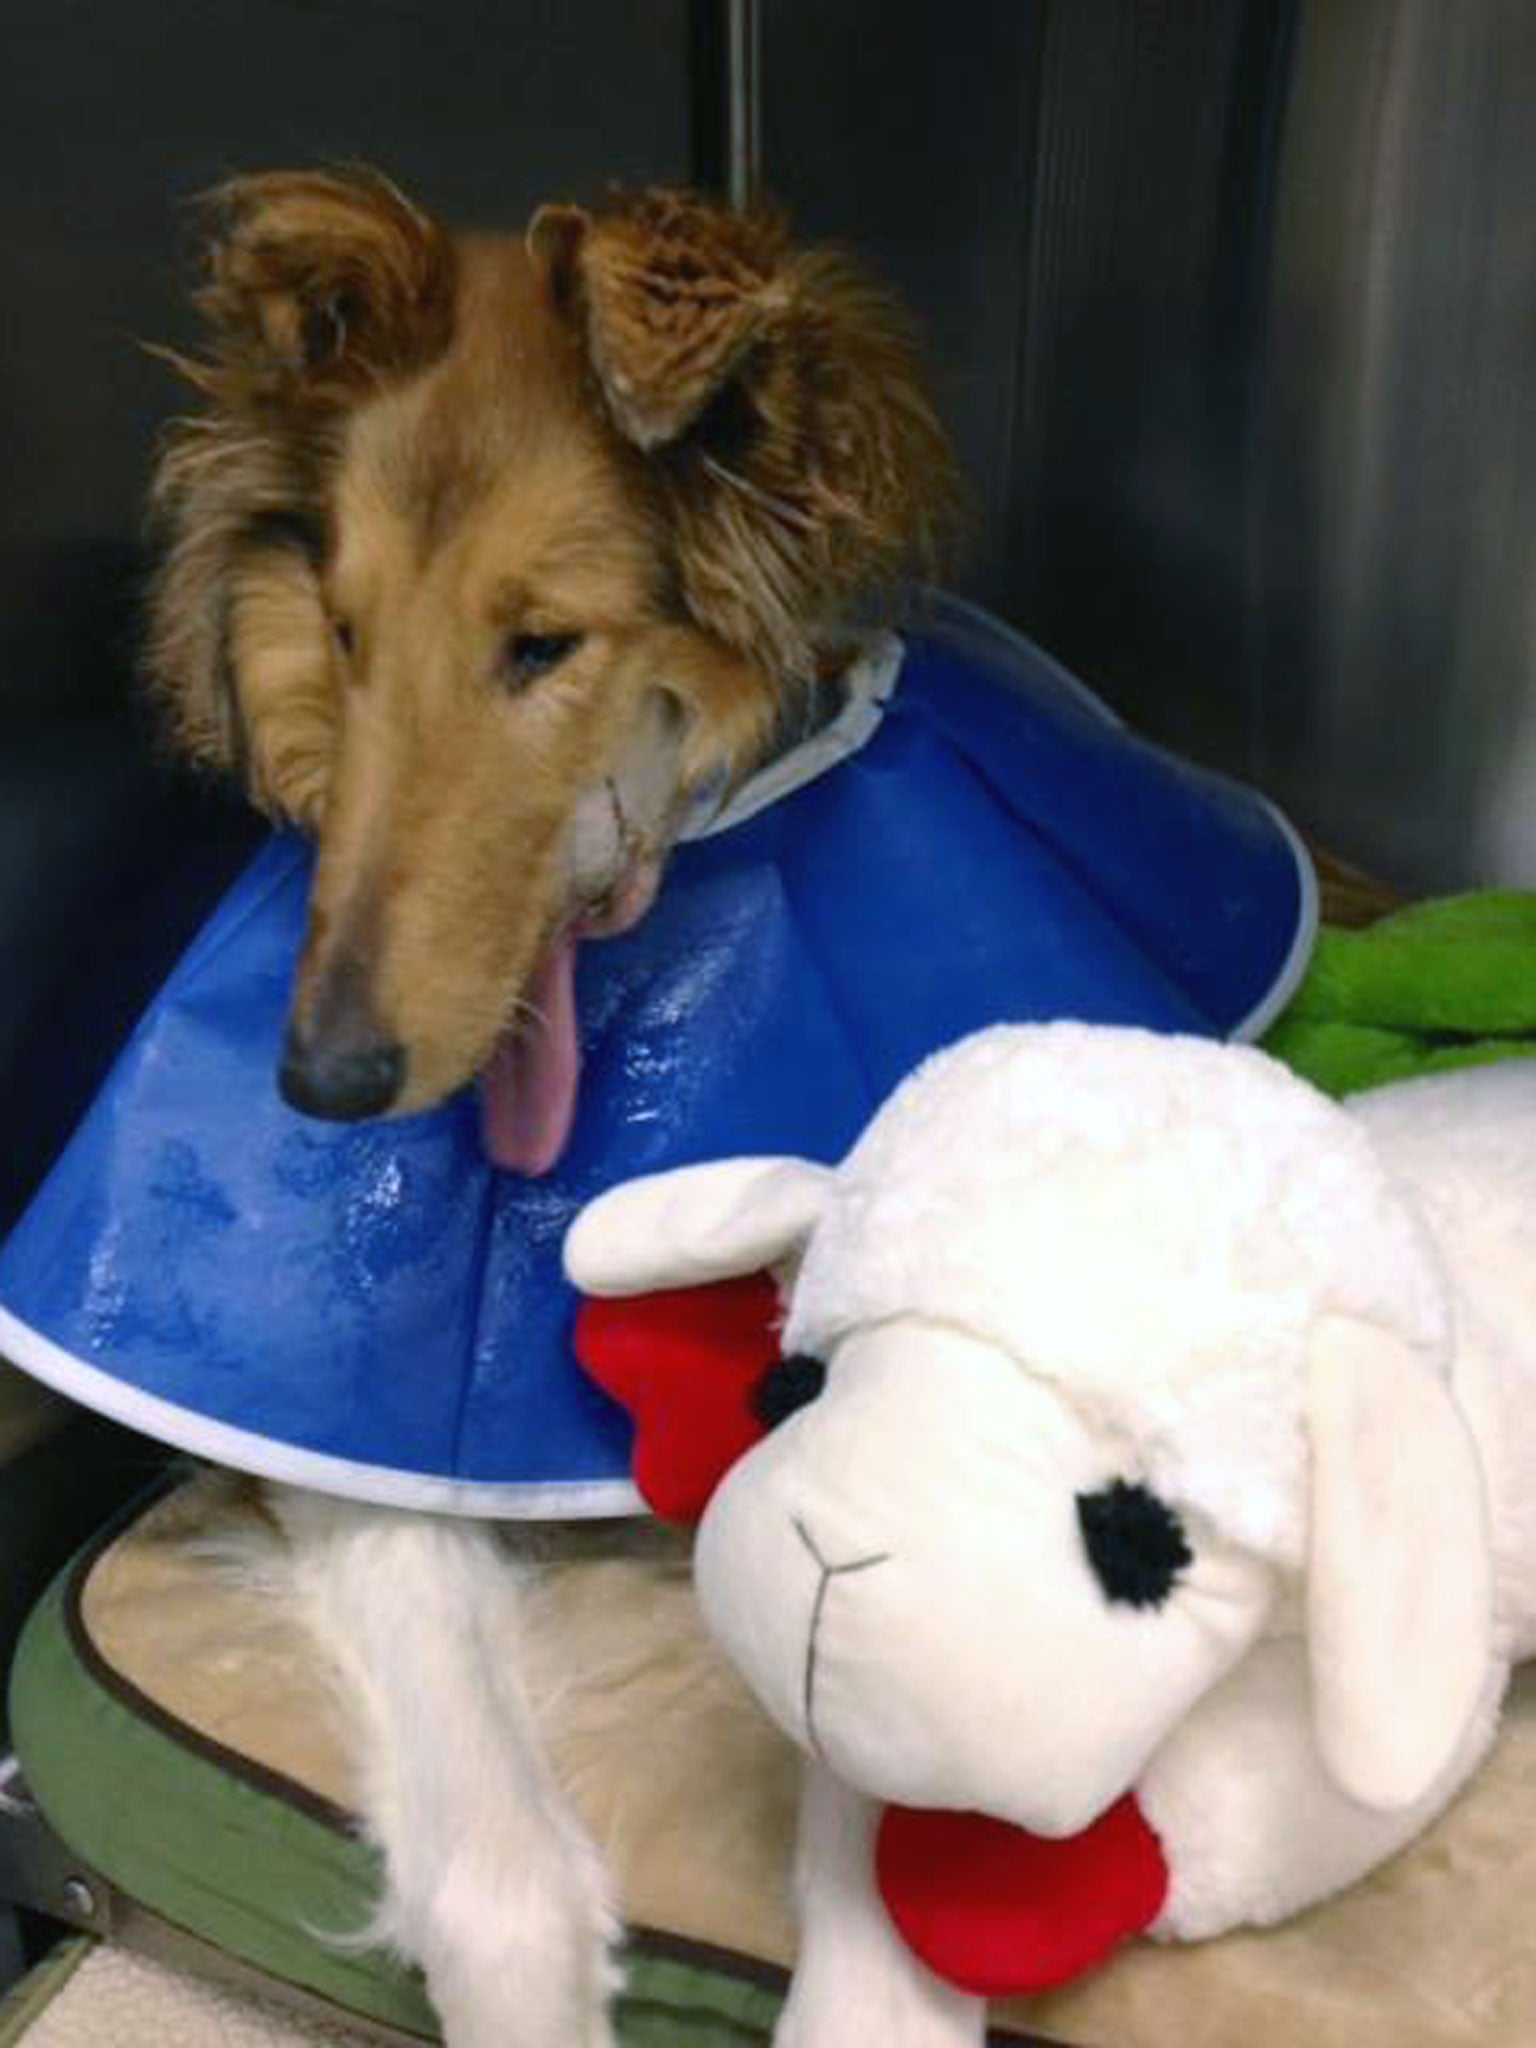 Lad - the dog who lost his lower jaw - to undergo reconstructive